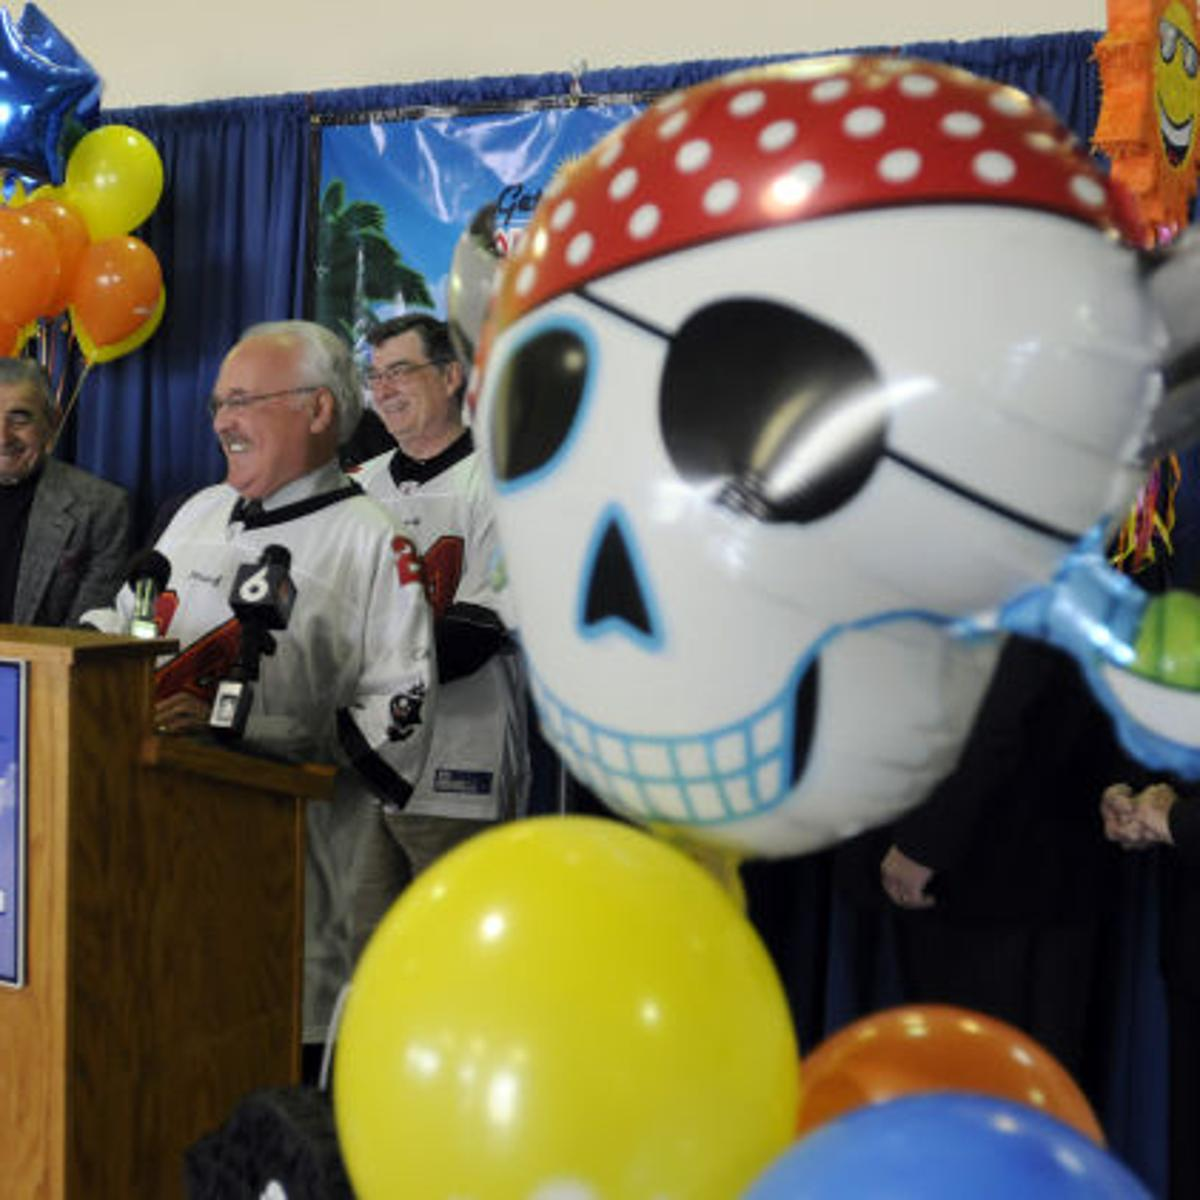 Allegiant to offer nonstop flights to Tampa Bay Feb  18   Business